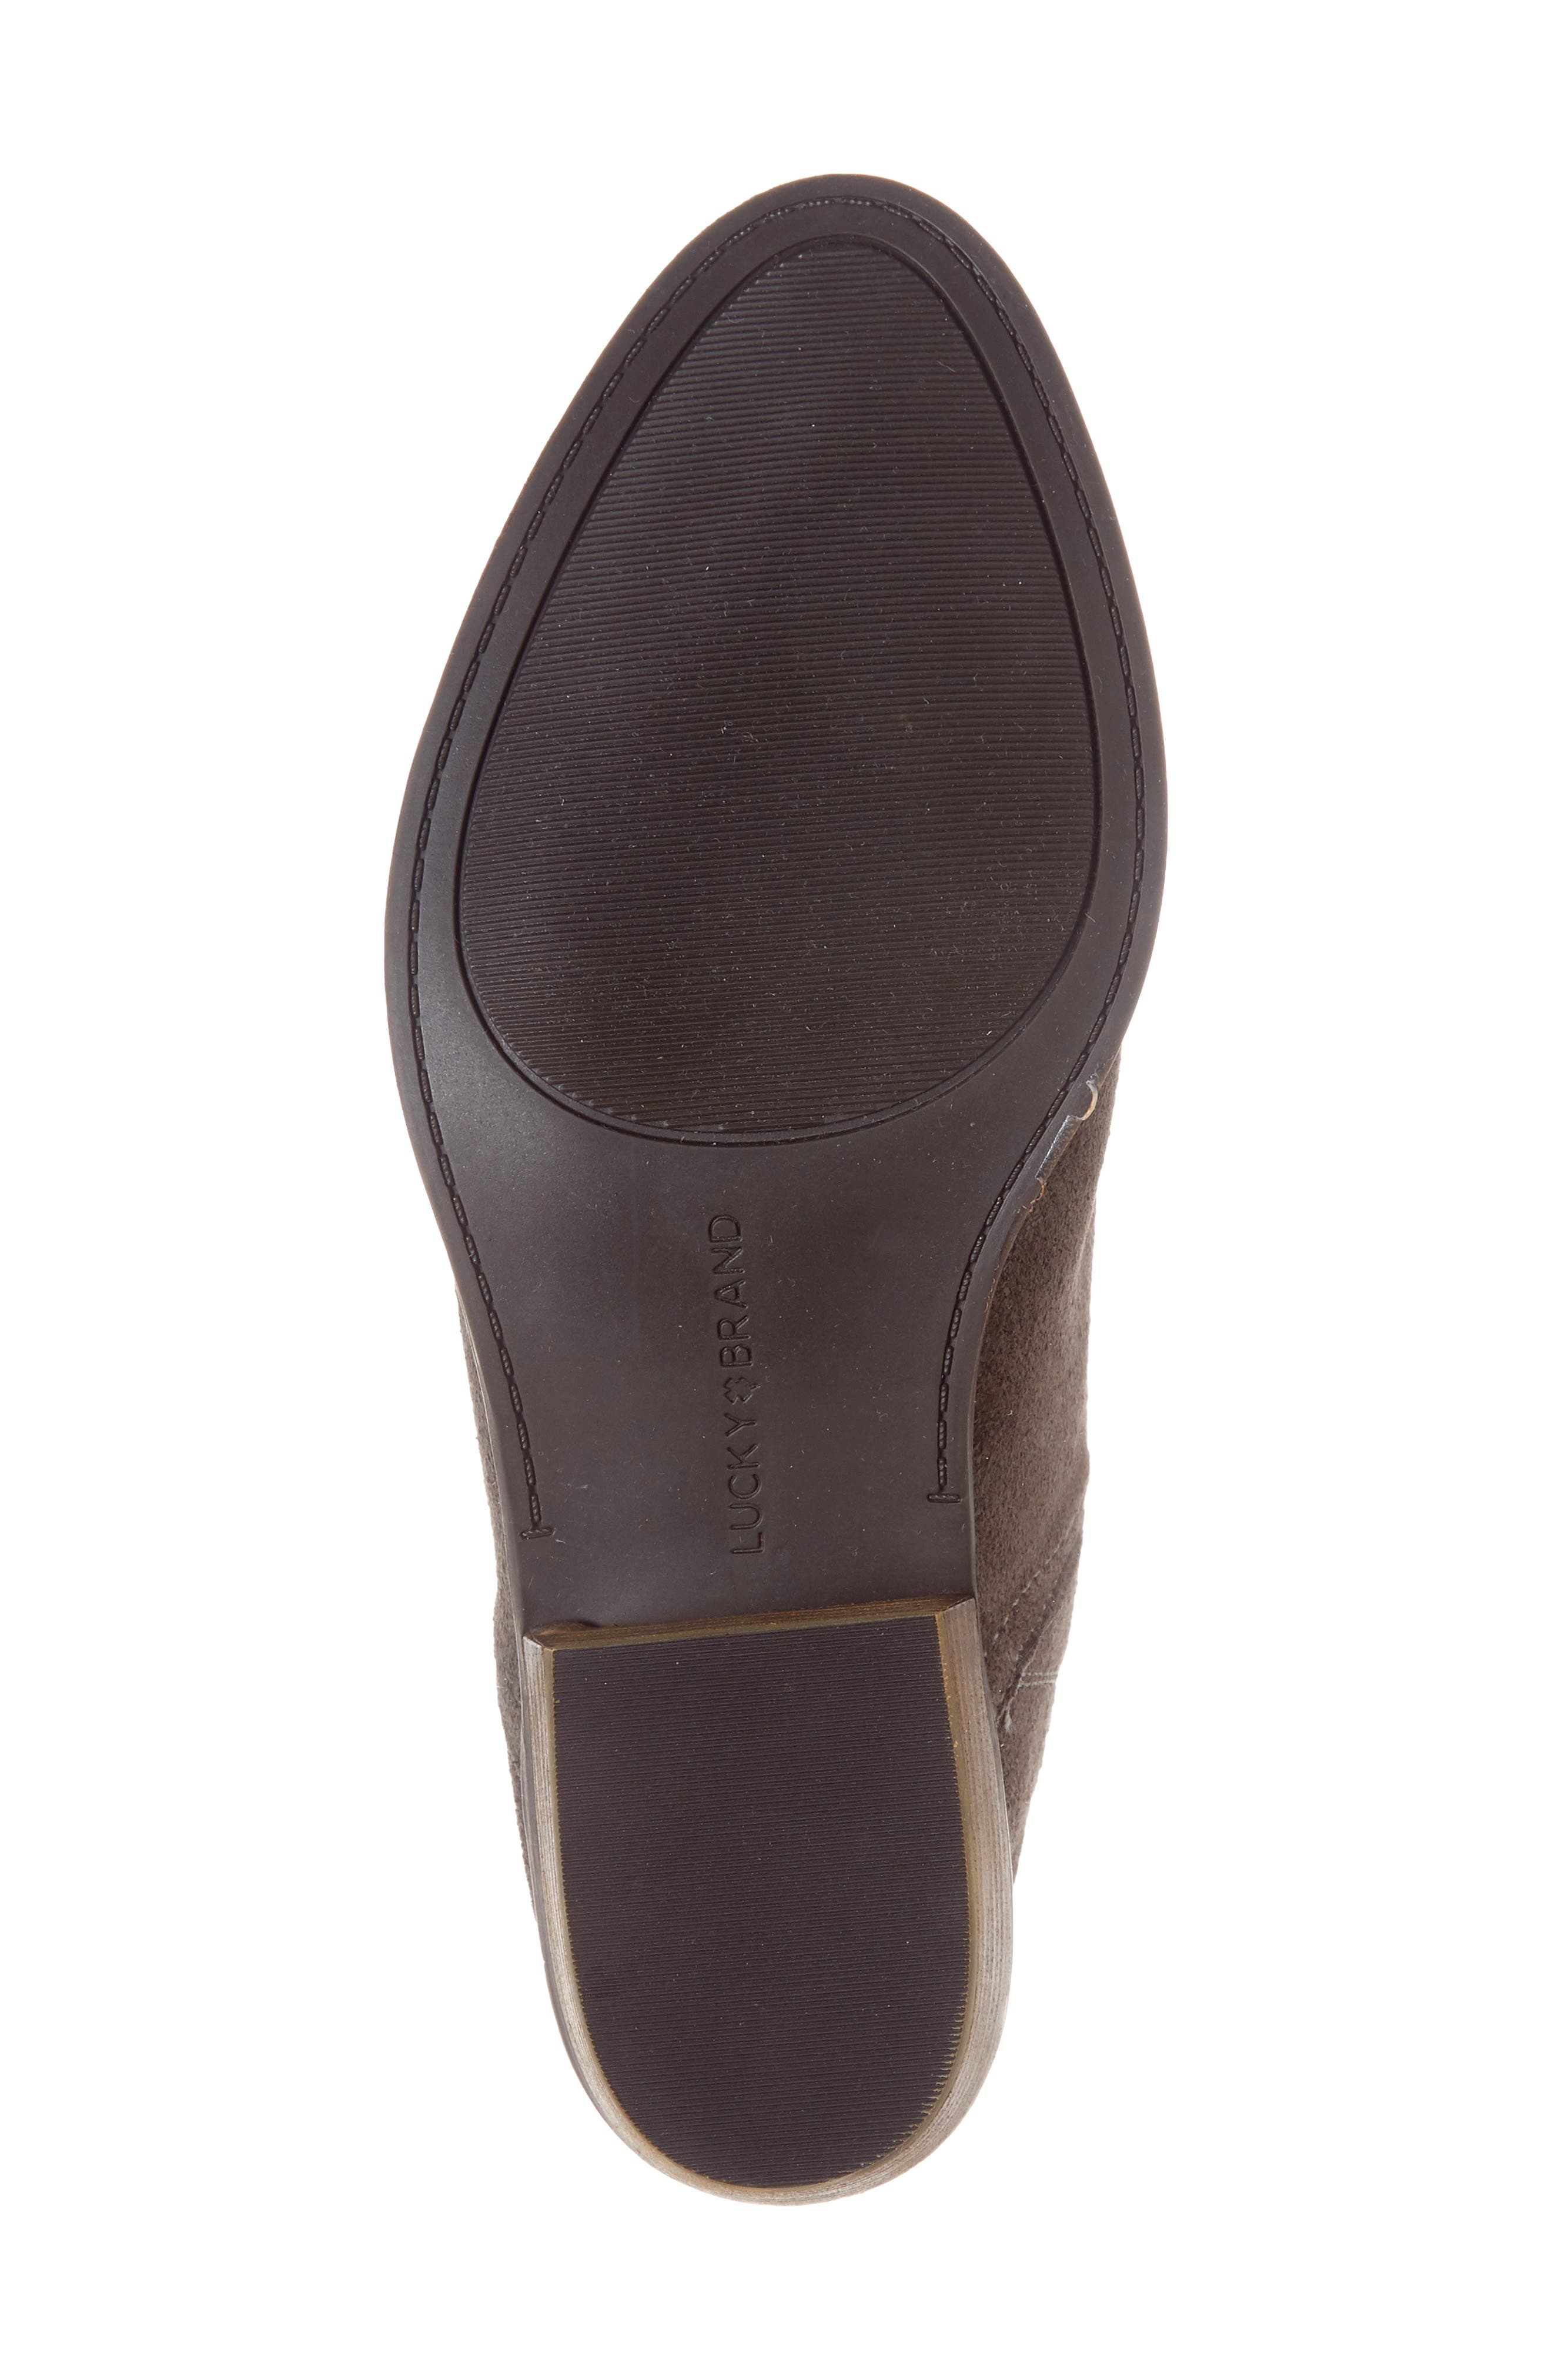 Fausst Bootie,                             Alternate thumbnail 6, color,                             PERISCOPE LEATHER